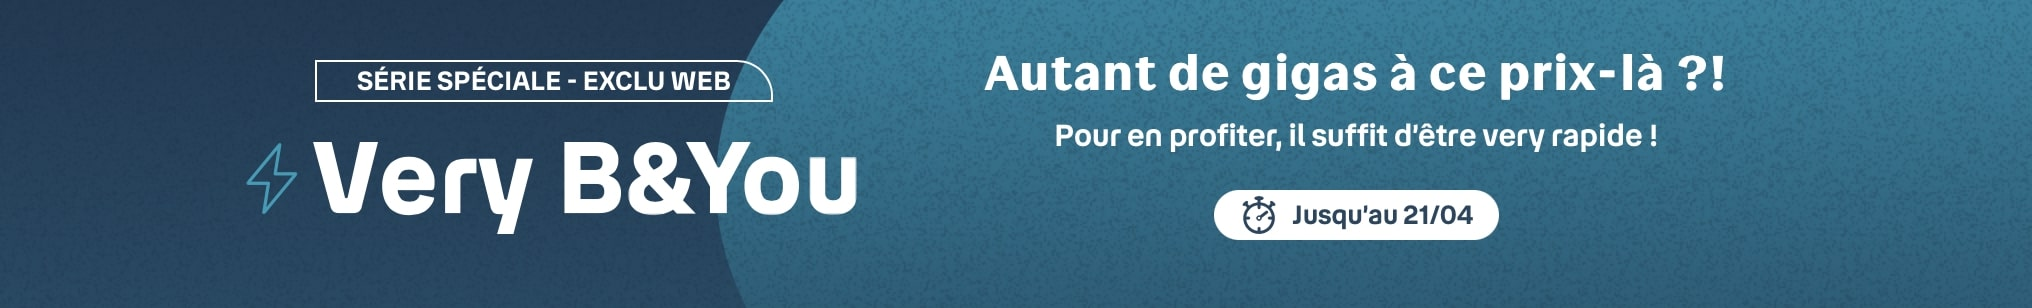 forfait mobile pas cher B and You exclu web